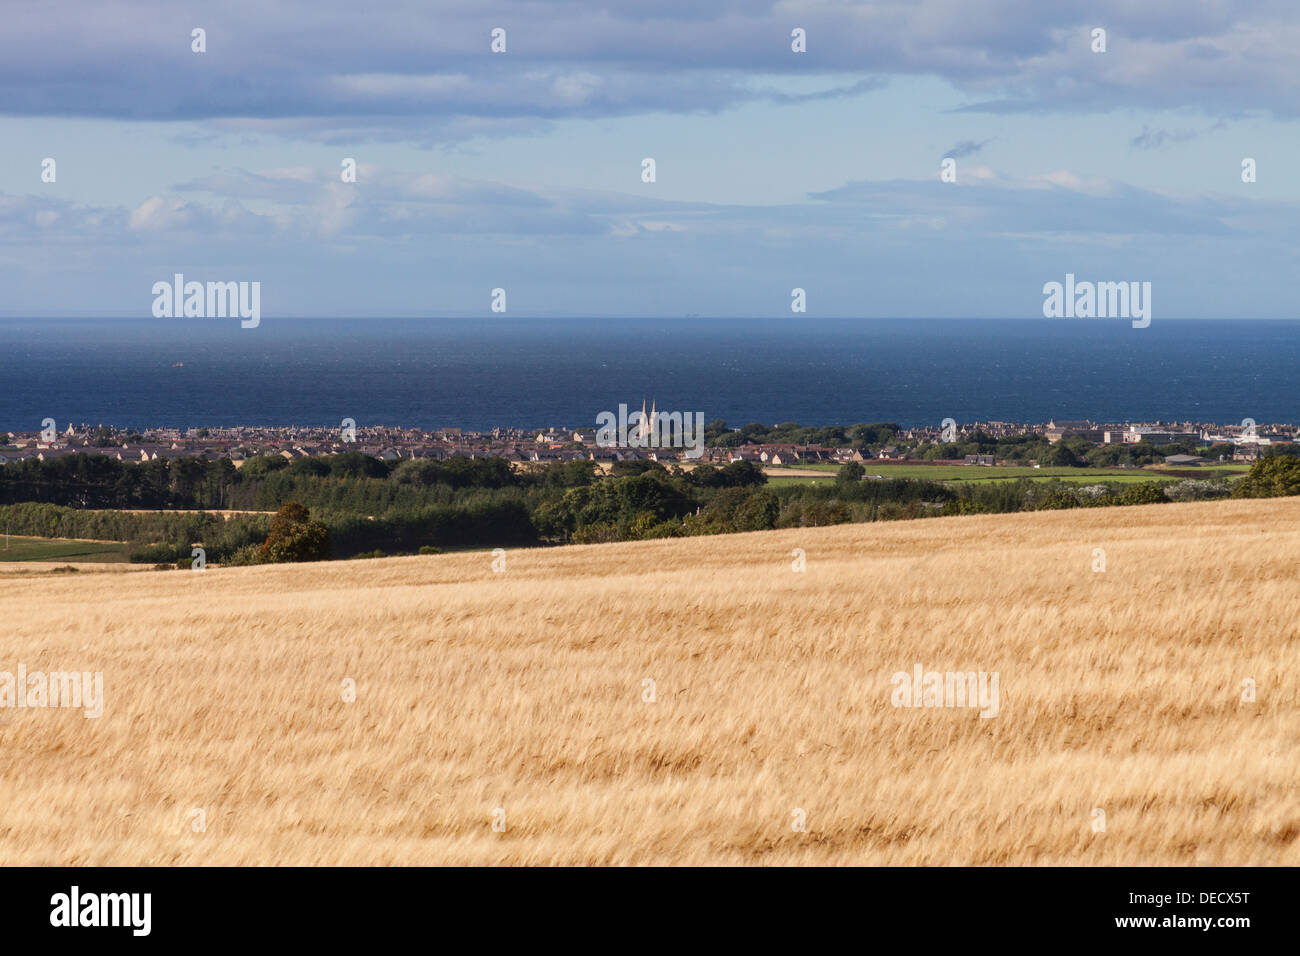 Buckie,Scotland with barley field in foreground - Stock Image